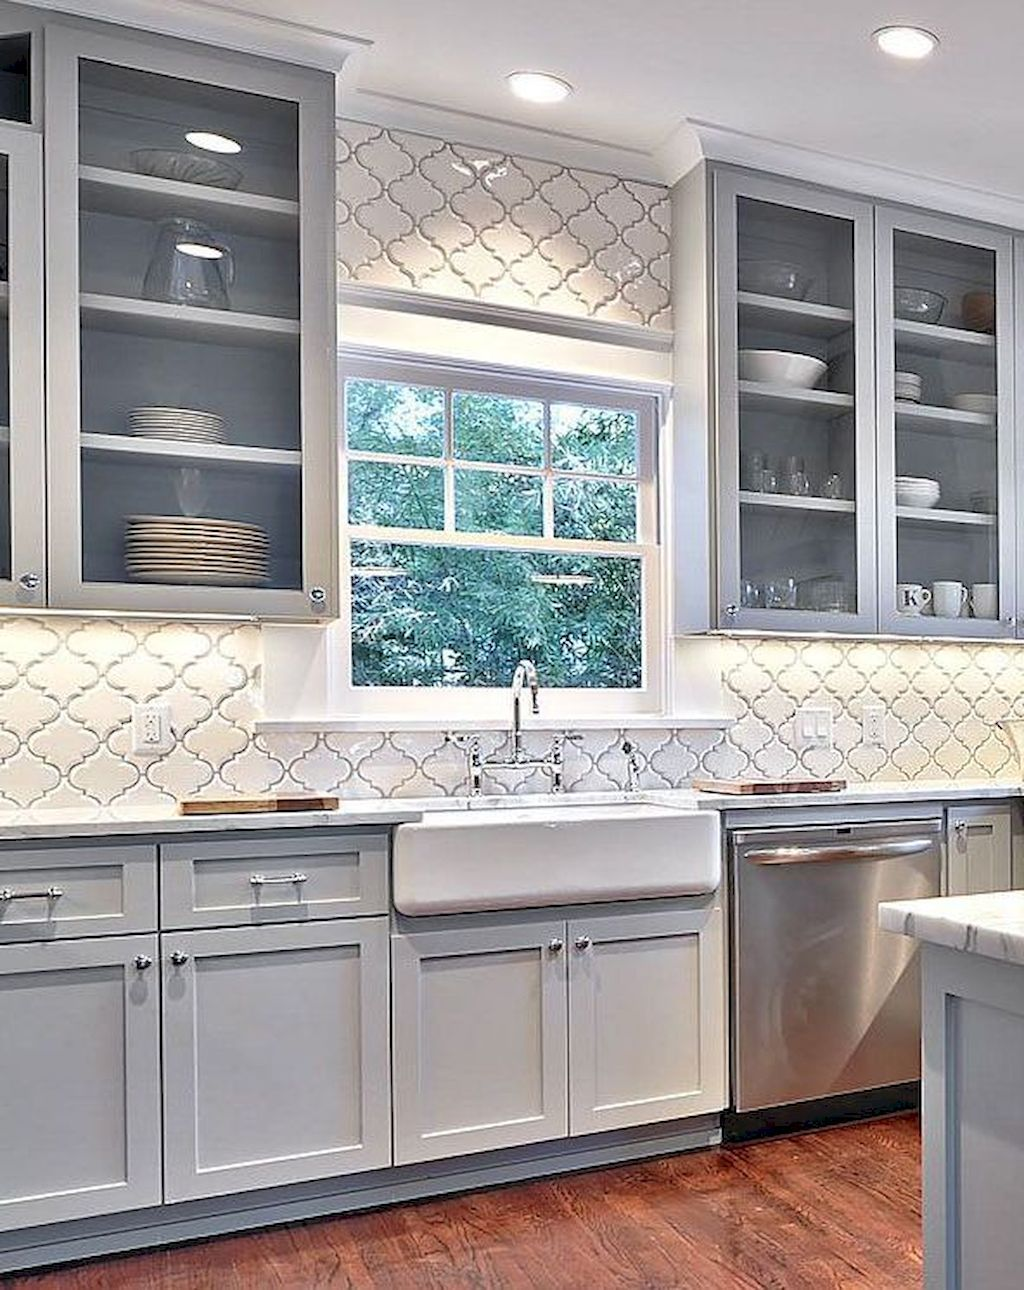 Cucina Arredo Kitchen 80 Beautiful White Kitchen Backsplash Ideas Kitchen Remodel